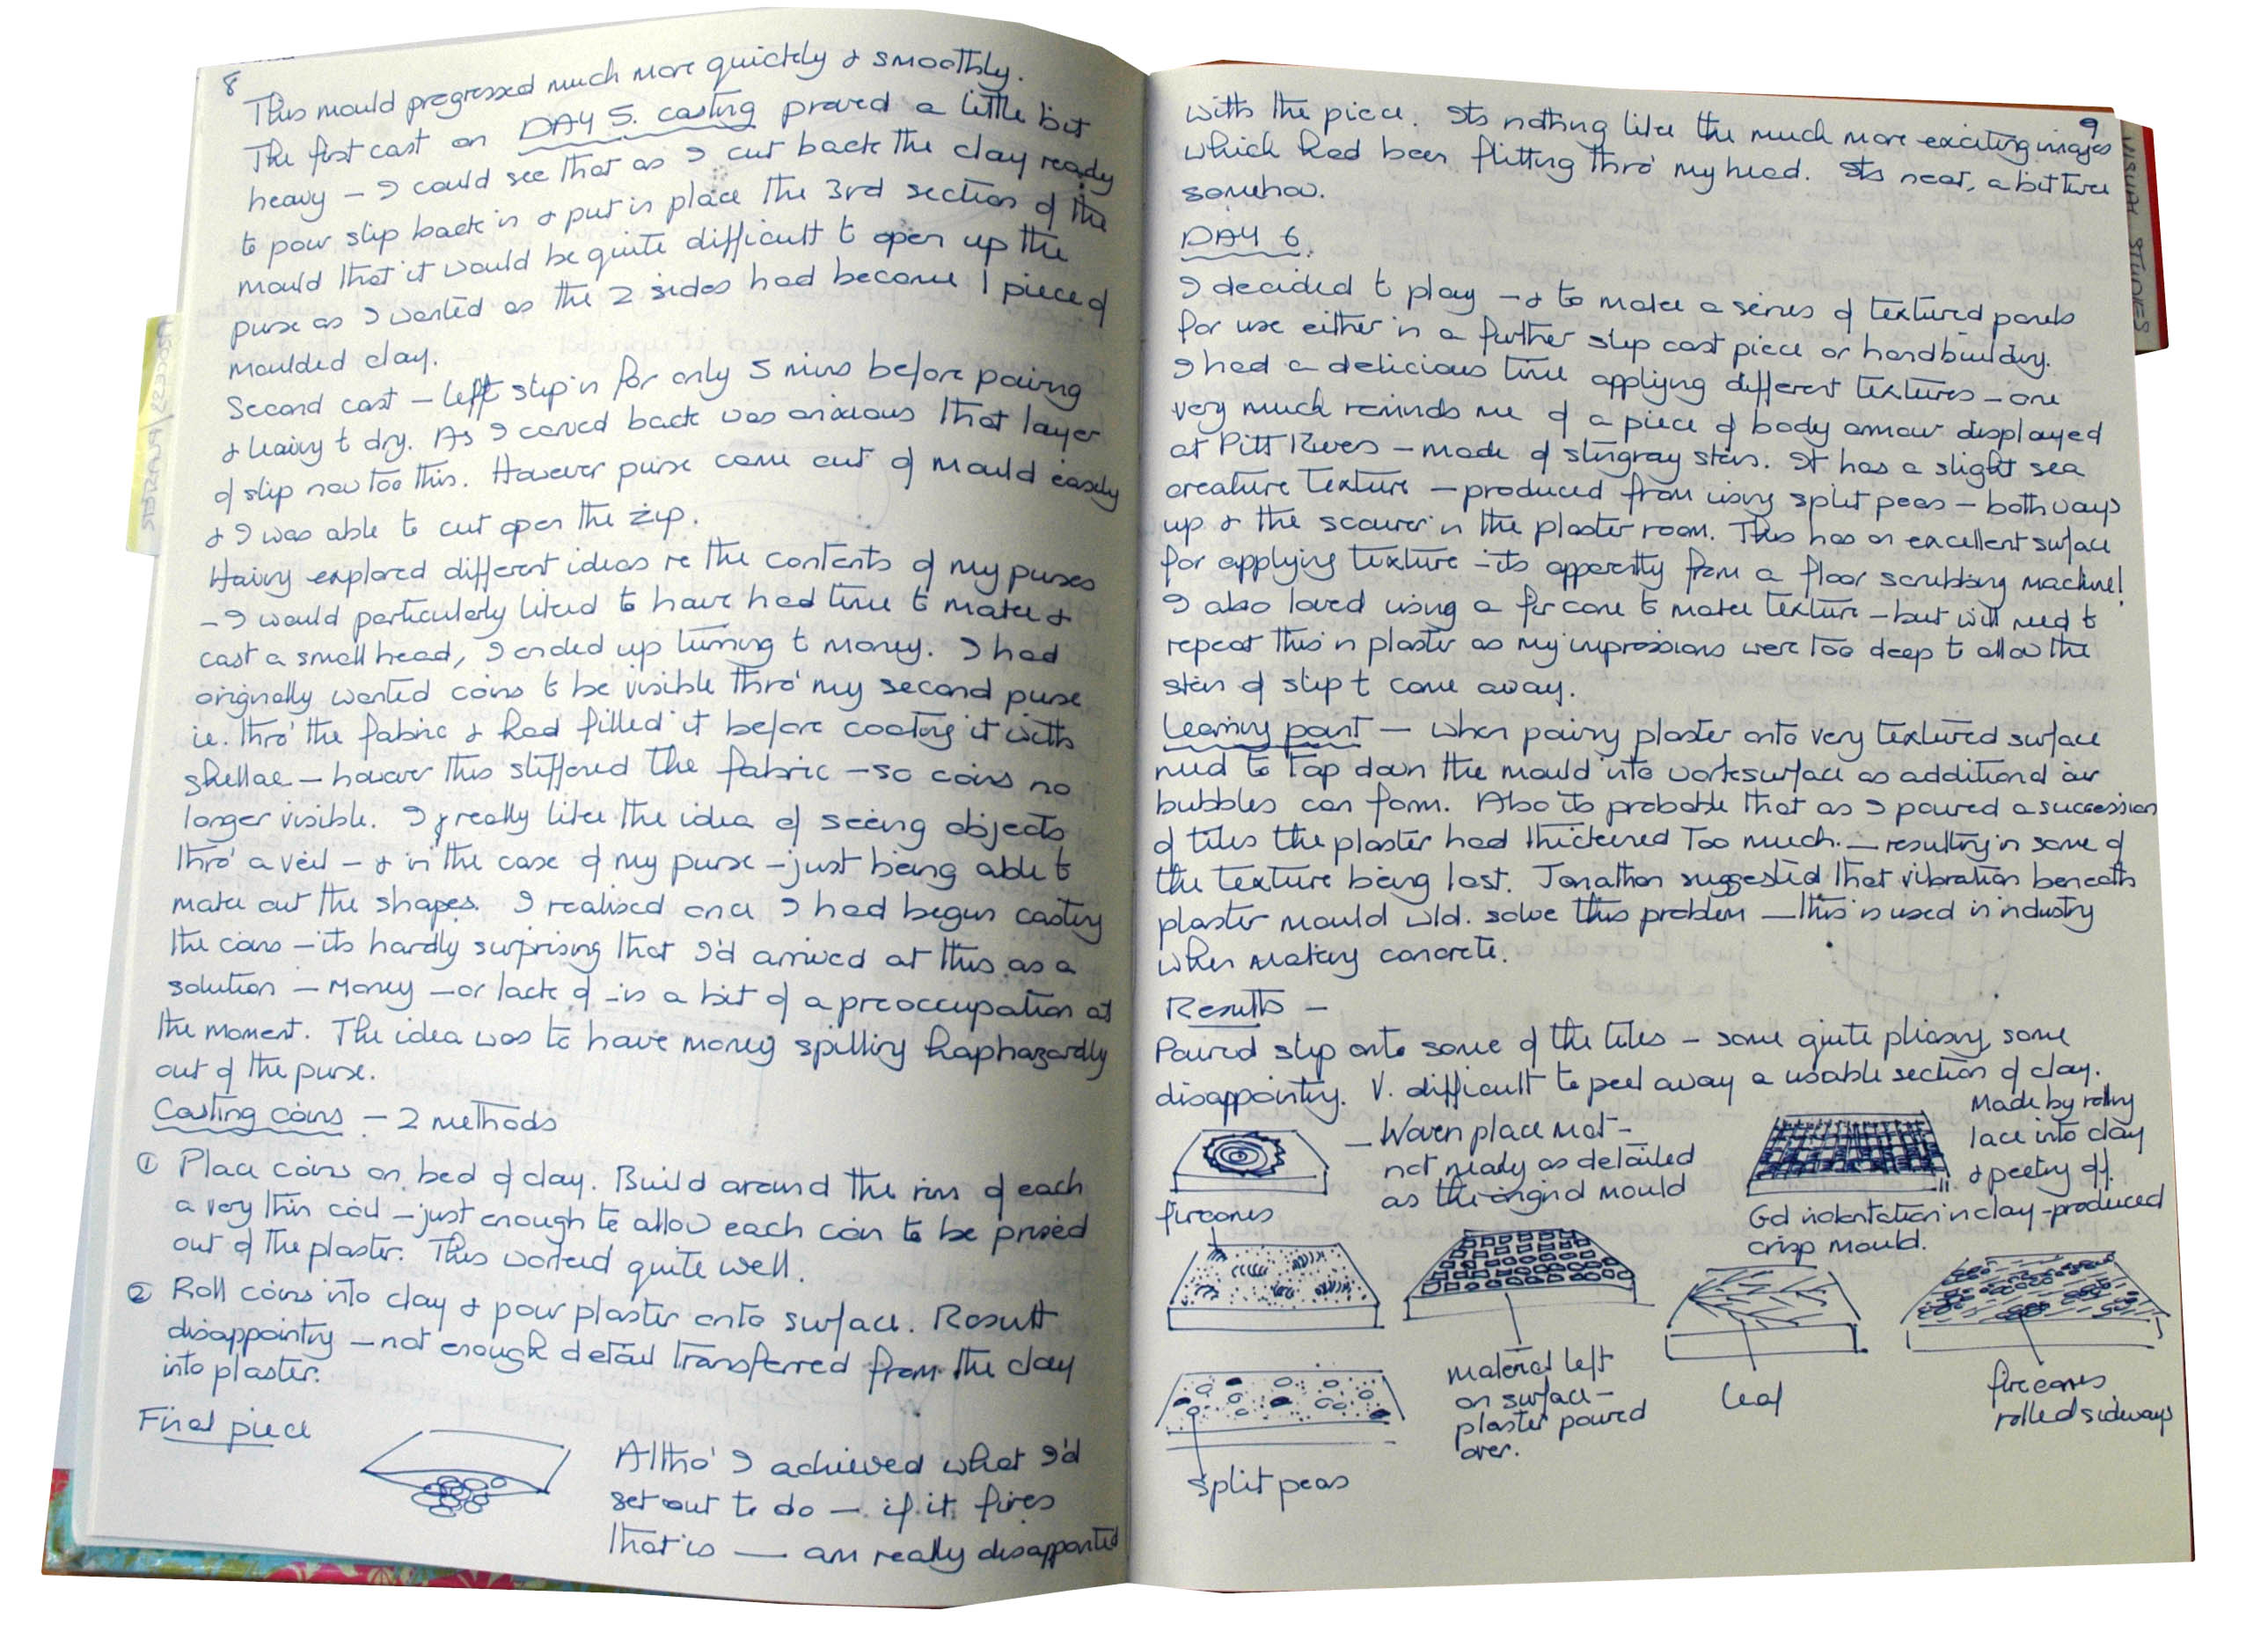 Writing your thoughts in a journal